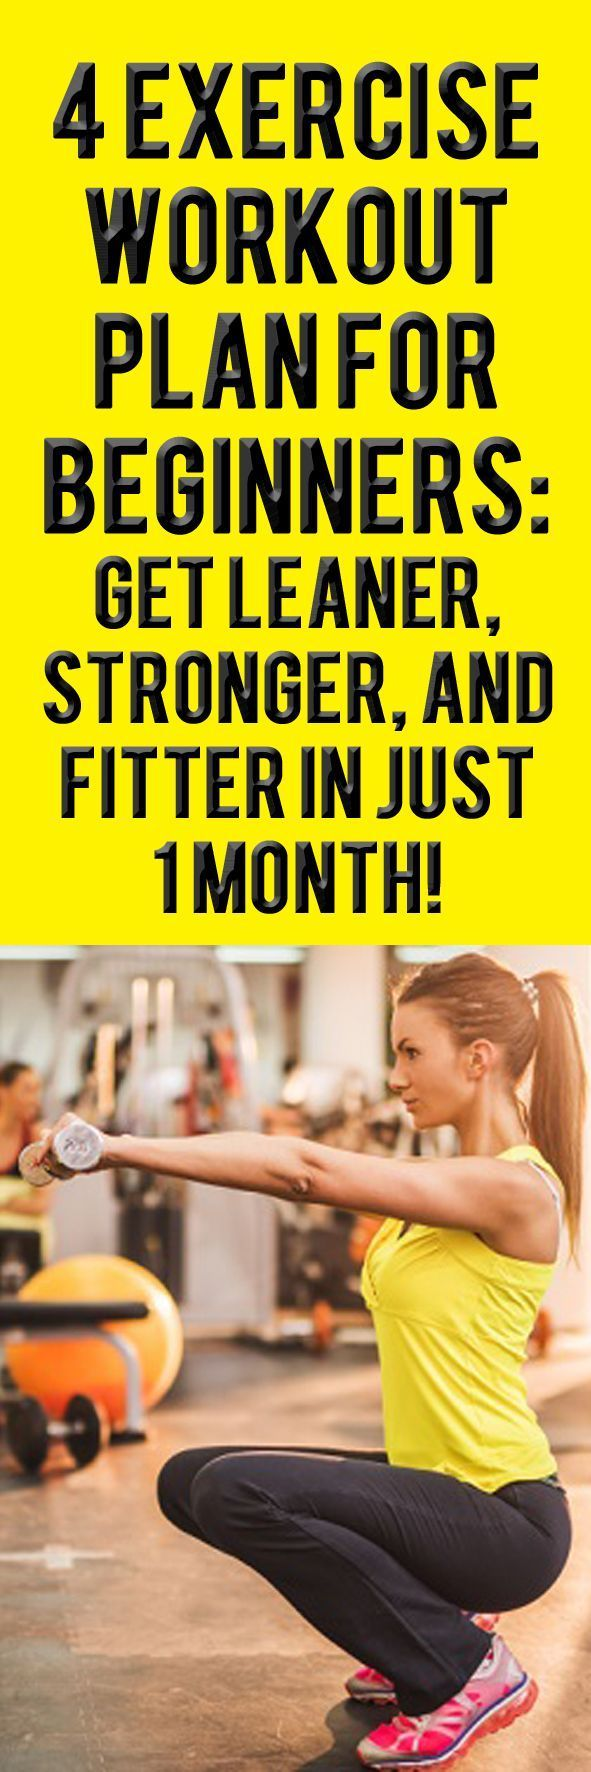 4 EXERCISE WORKOUT  PLAN FOR BEGINNERS: GET LEANER, STRONGER, AND FITTER IN JUST  1 MONTH! #fitness find more relevant stuff: victoriajohnson.com